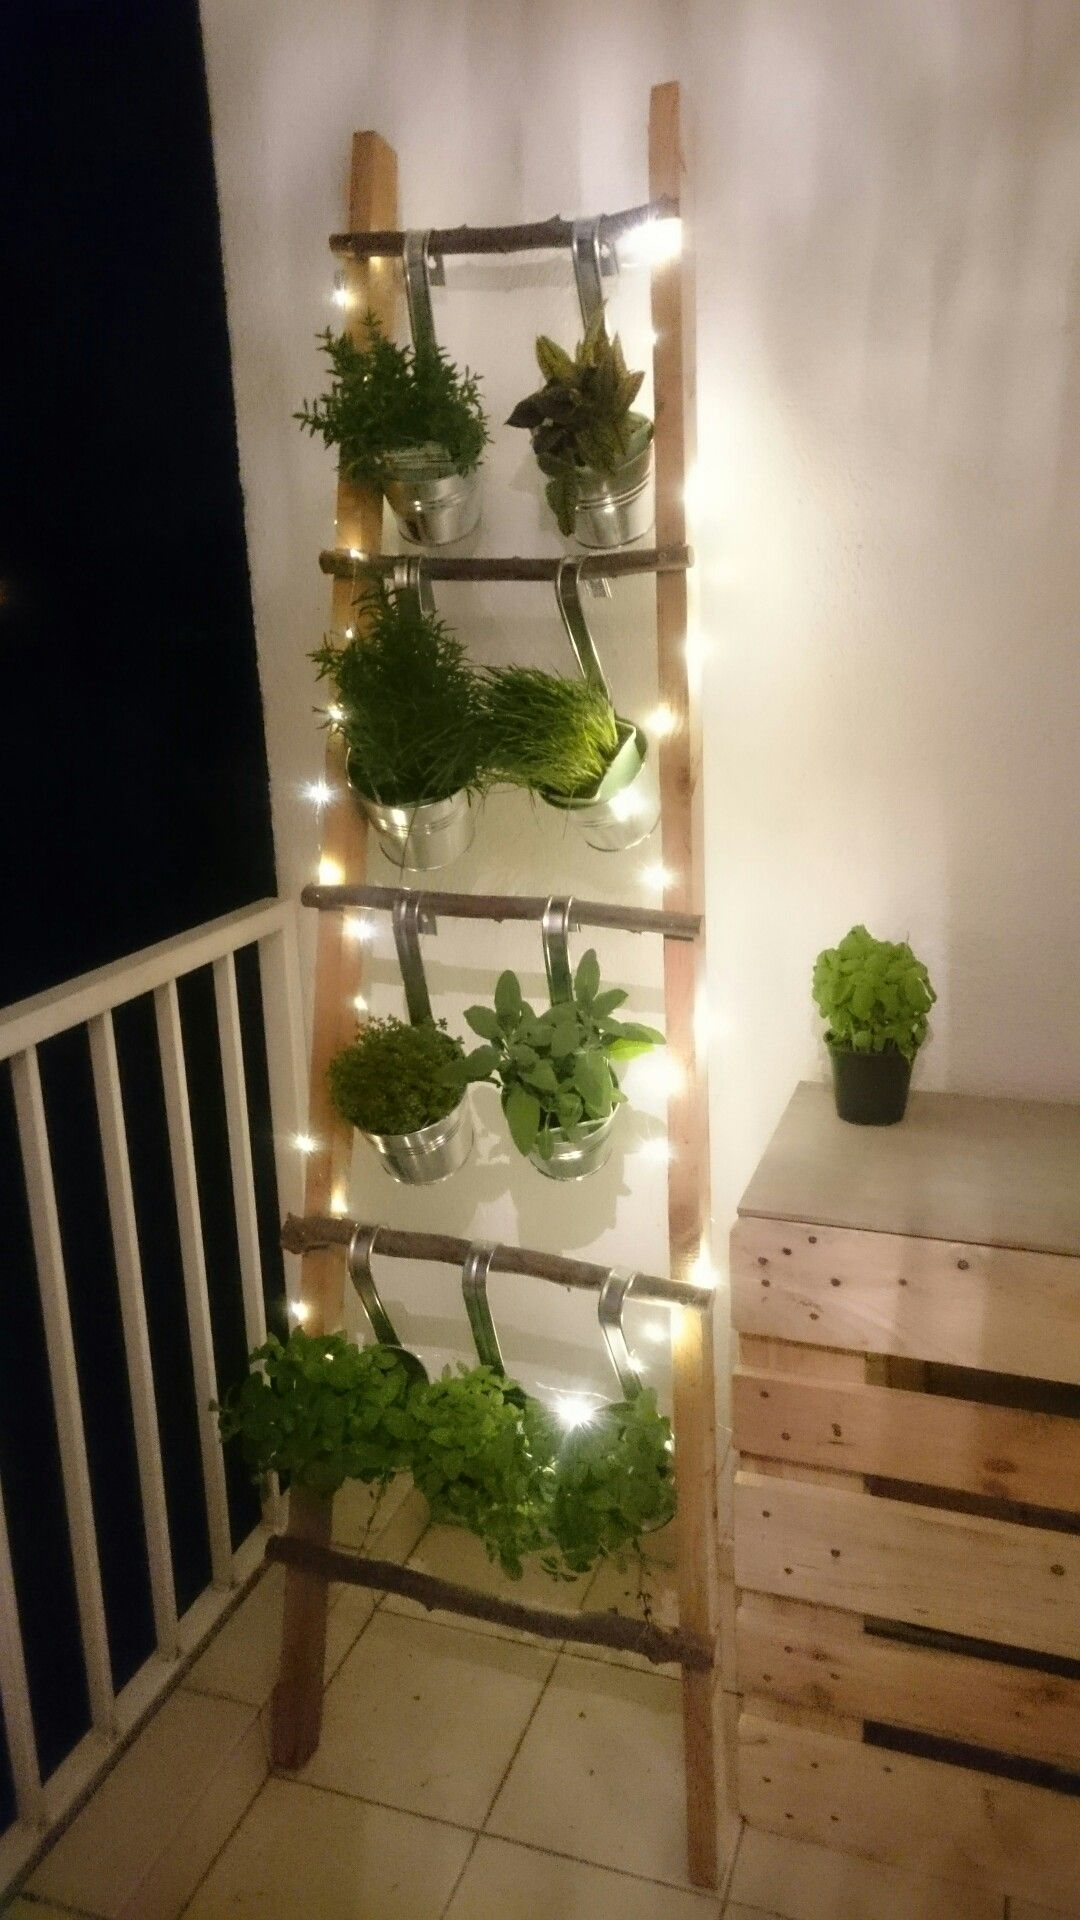 DIY Balkon Kräuter Leiter Lichterkette Balcony herb leddar #apartmentbalconydecorating